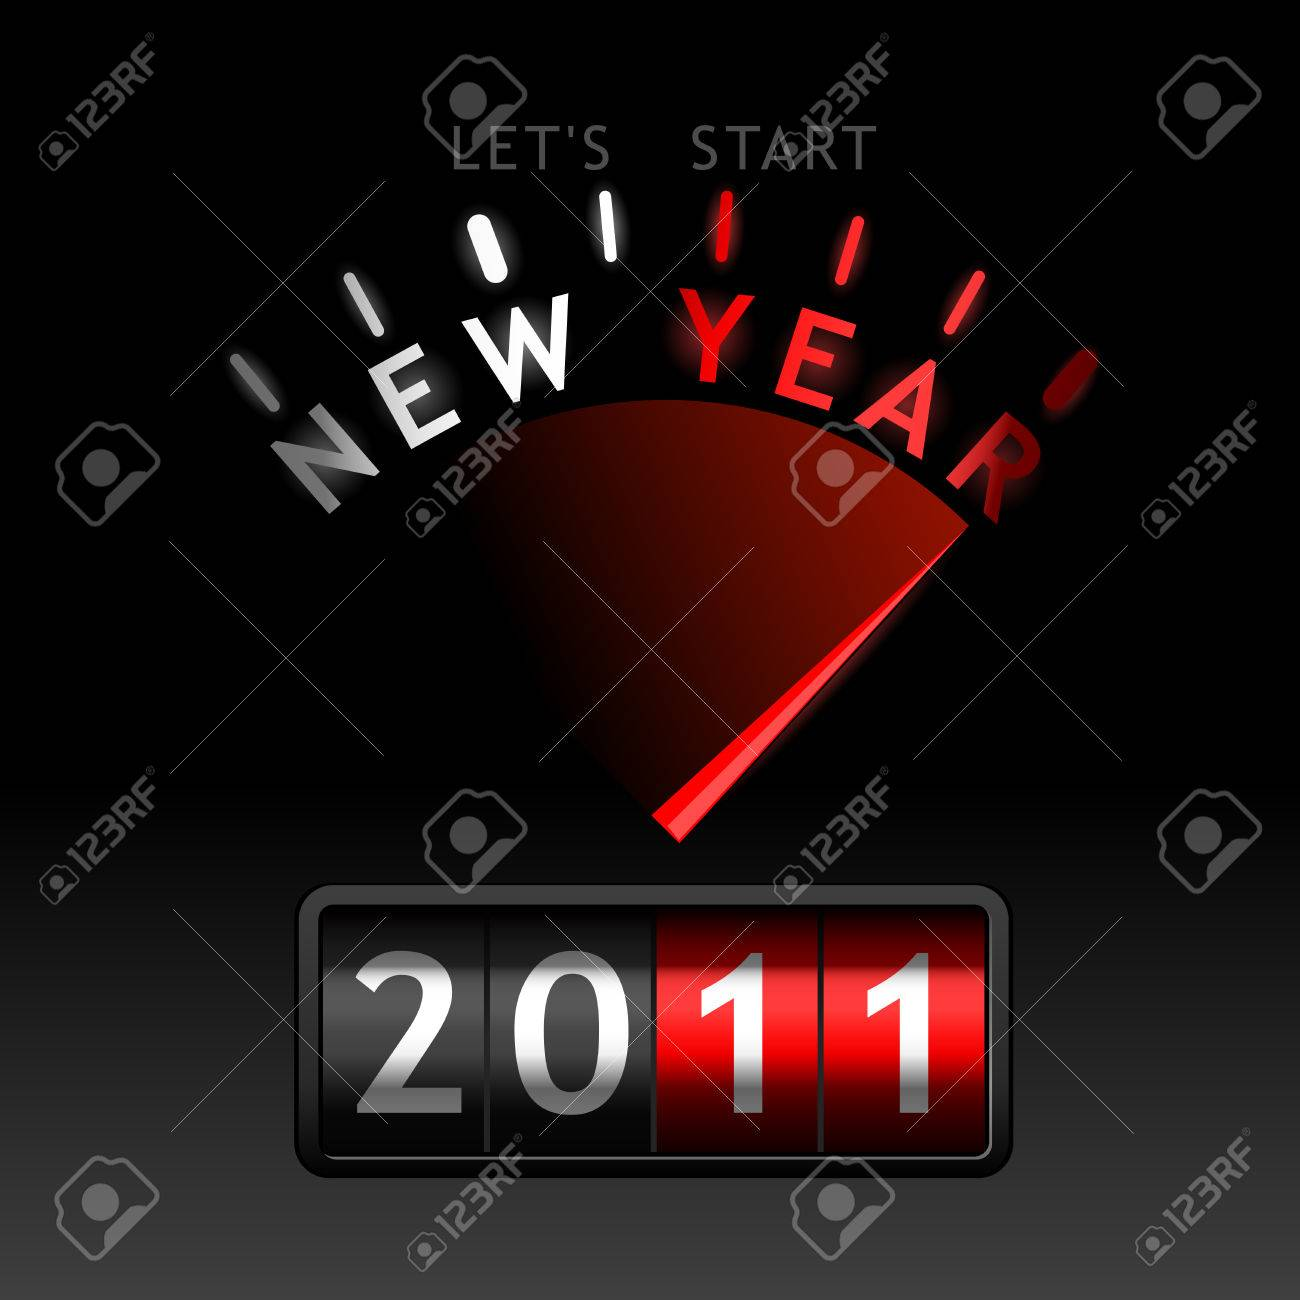 2011 counter on the dashboard Stock Vector - 8058962